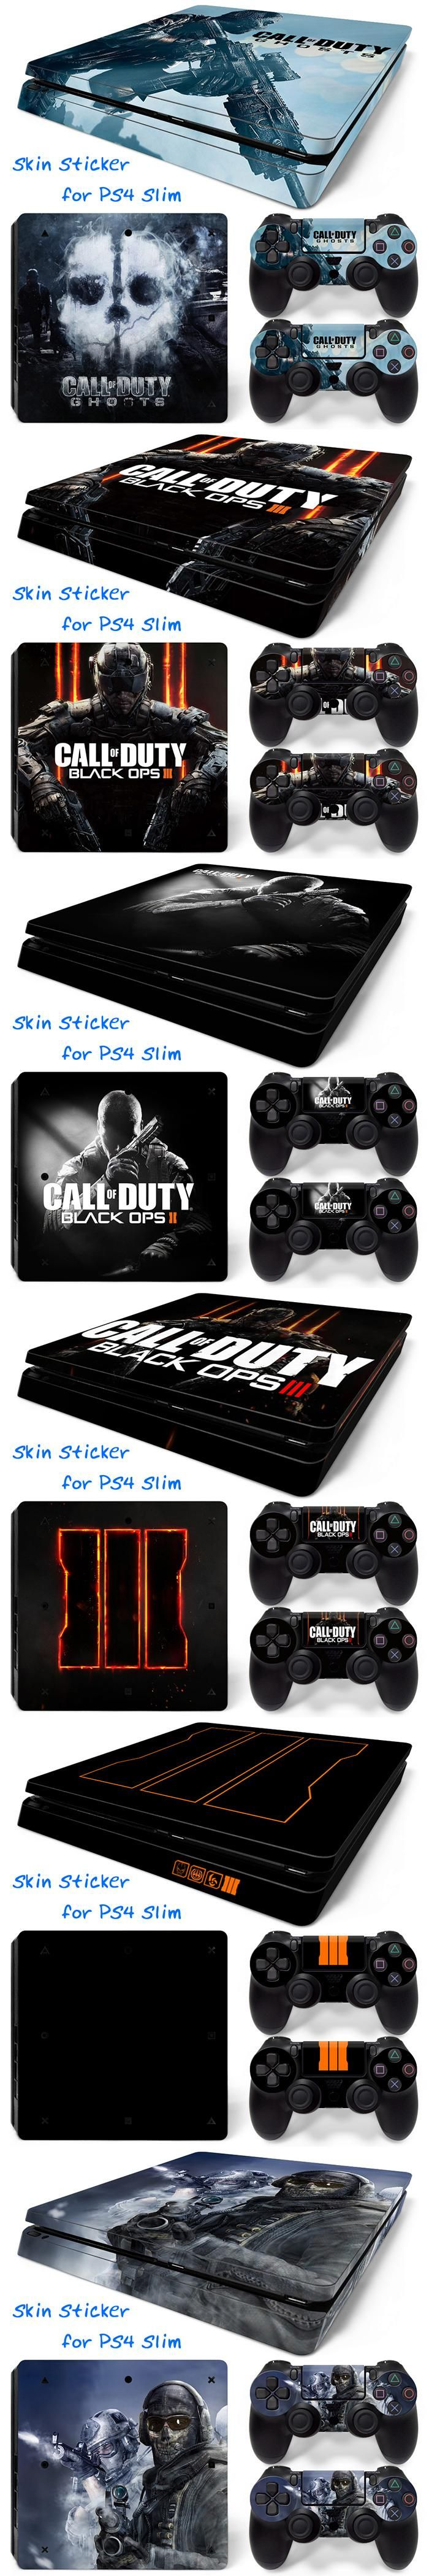 Selling for Sony Playstation 4 Slim PVC Skin Stickers for PS4 Slim Console and Controllers